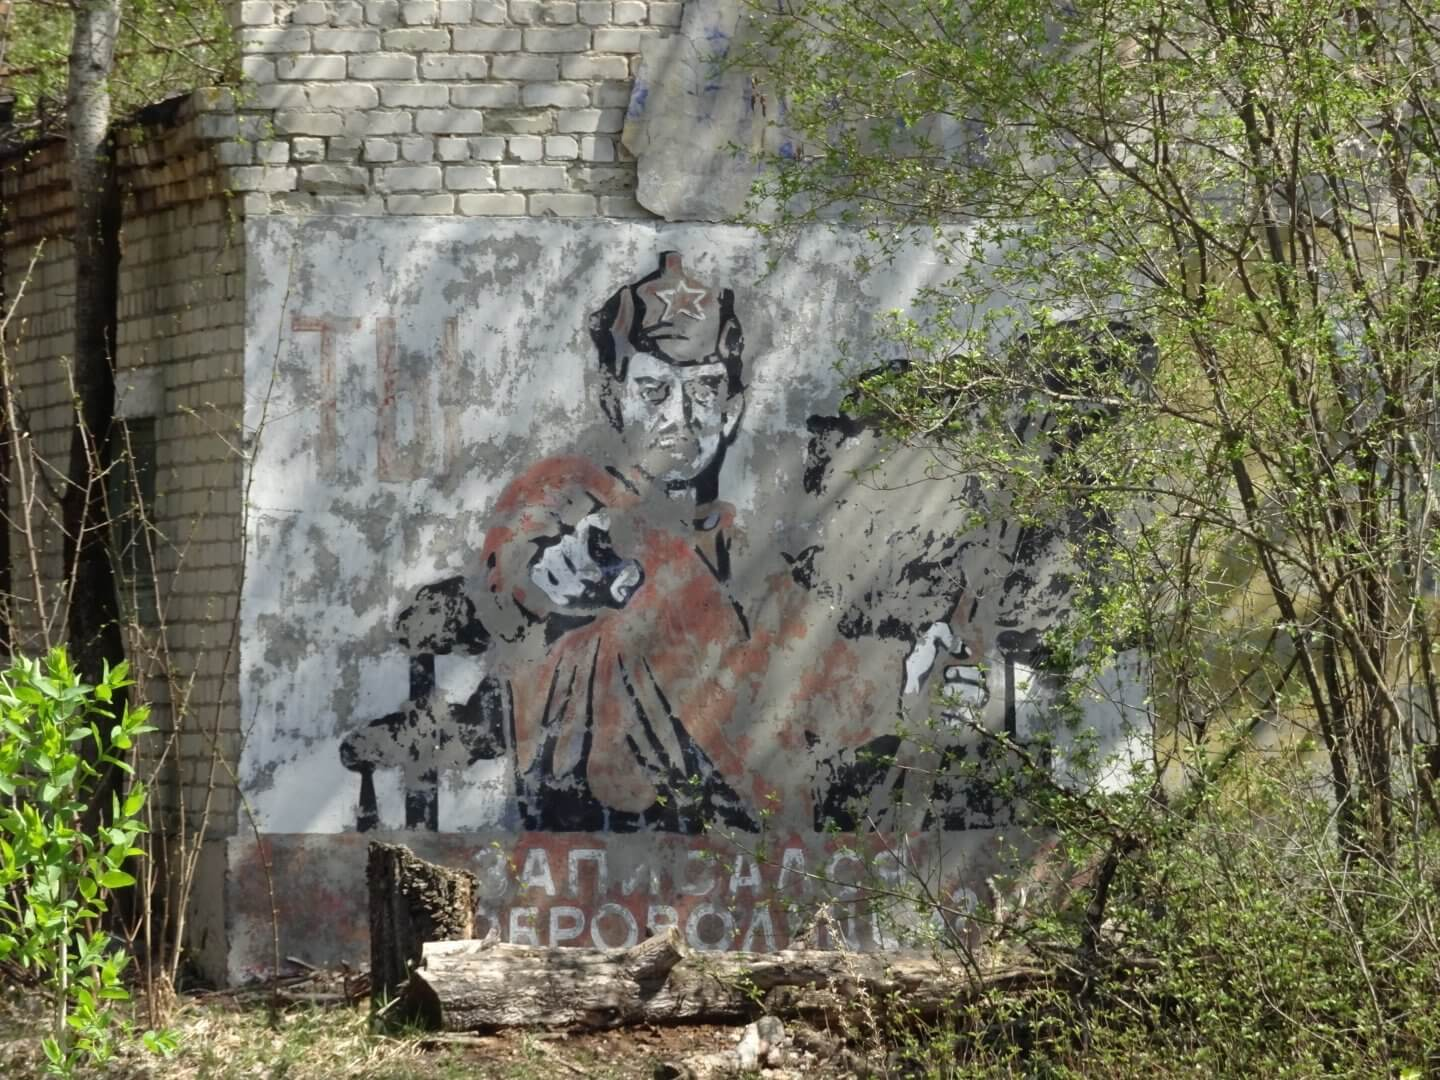 Soviet soldier mural at Chernobyl